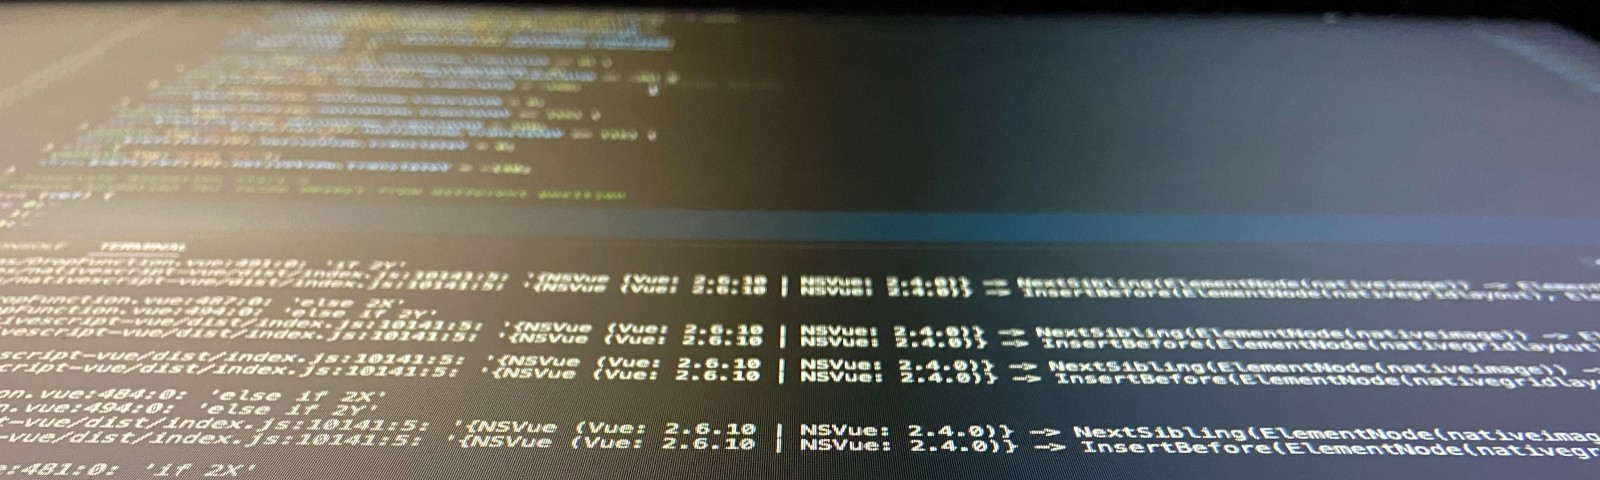 An IDE tools image while programming